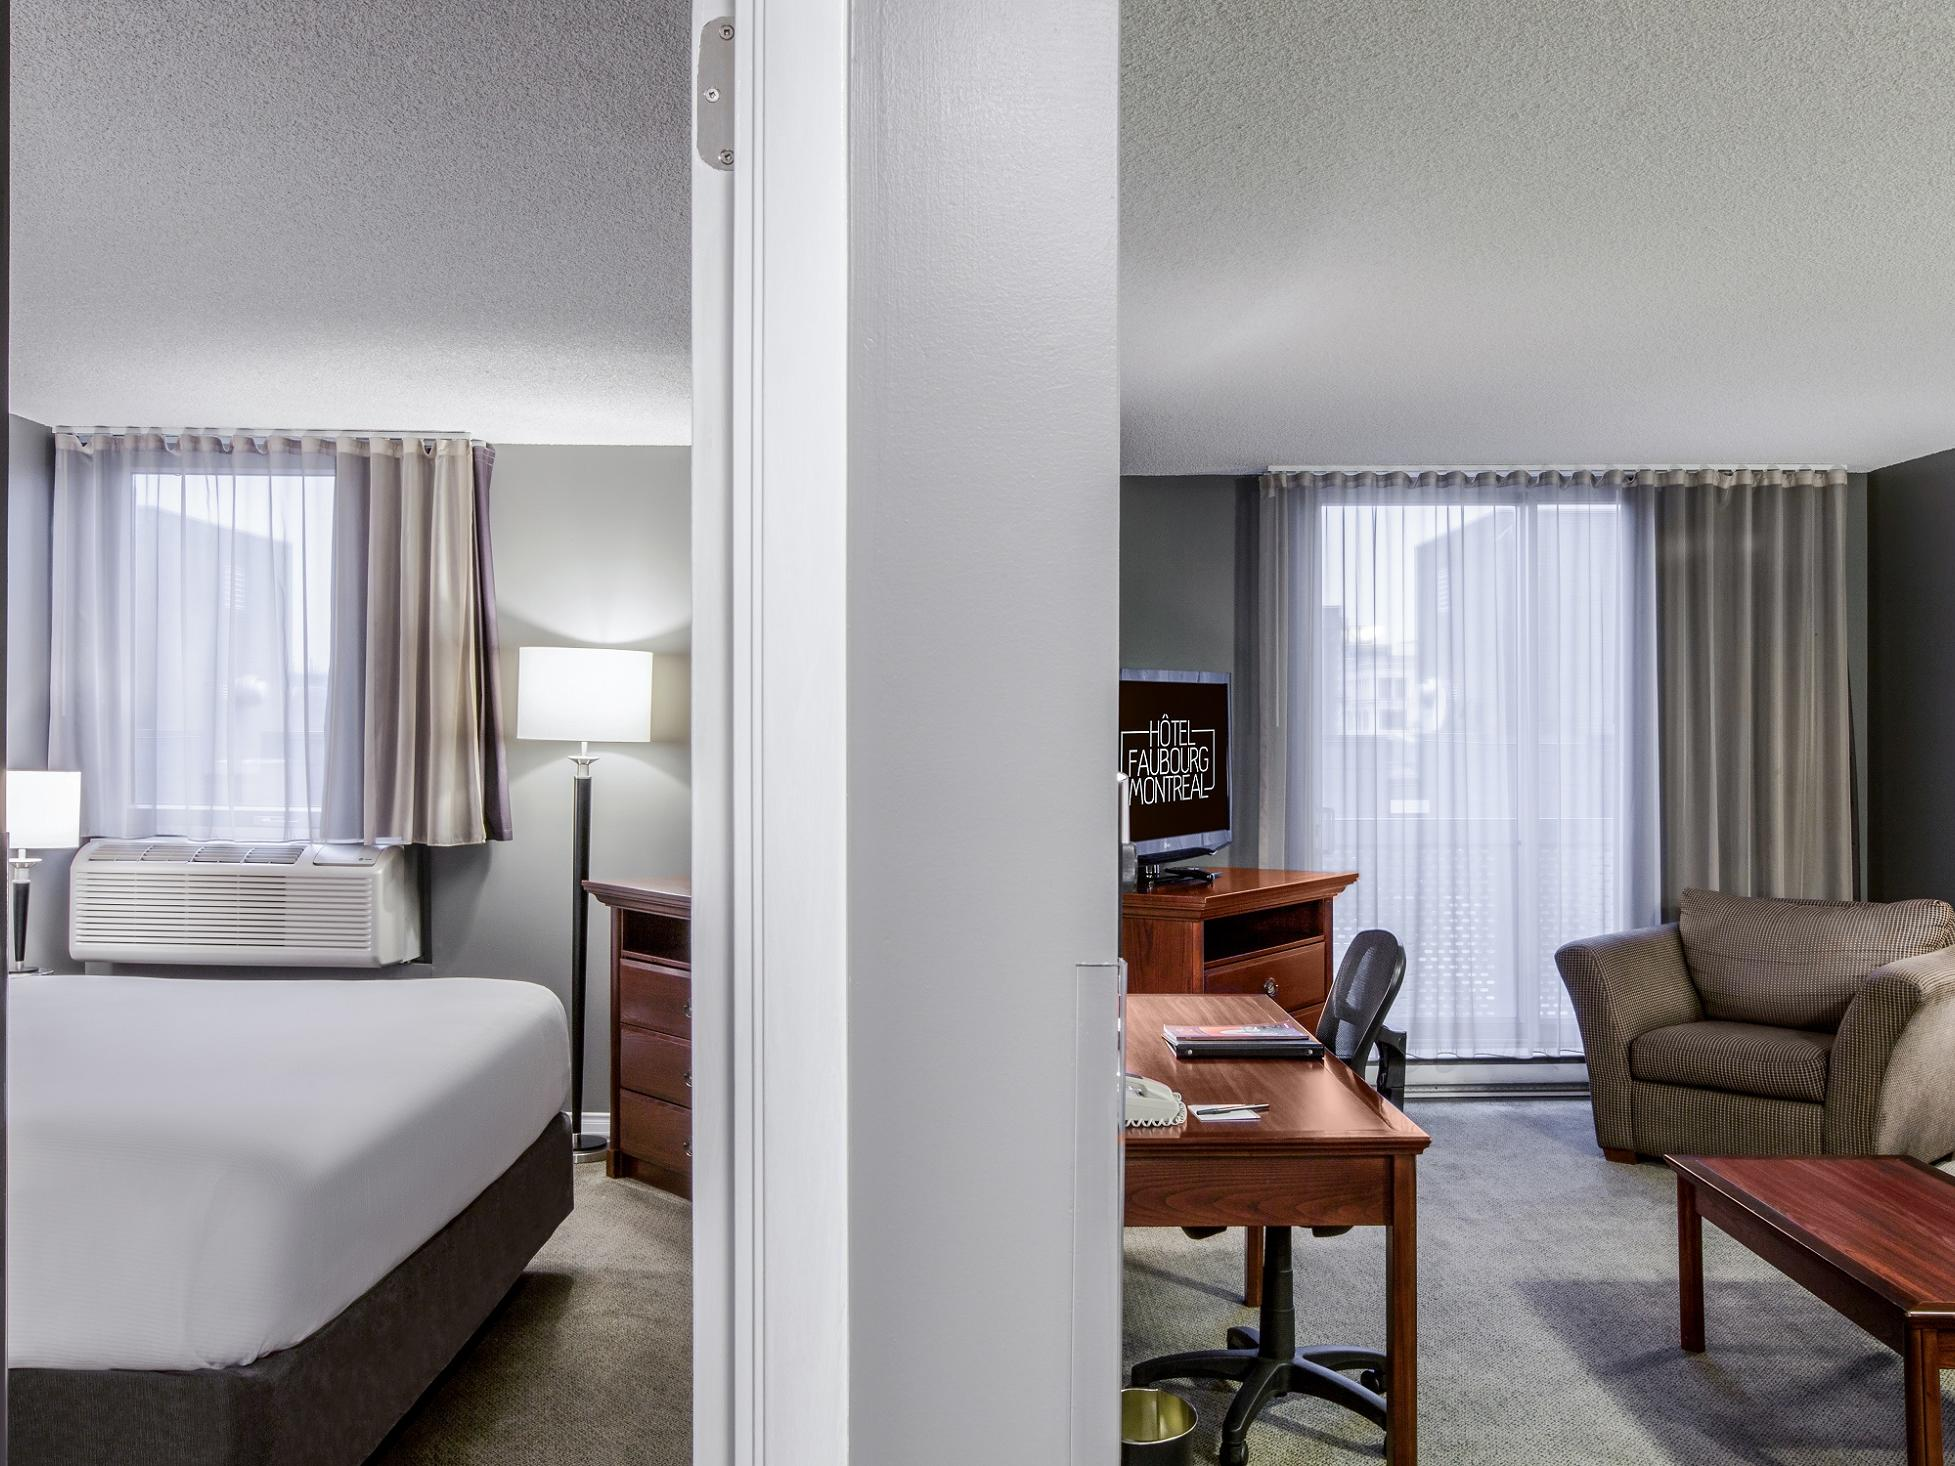 One Queen Suite with Balcony at Hotel Faubourg Montreal